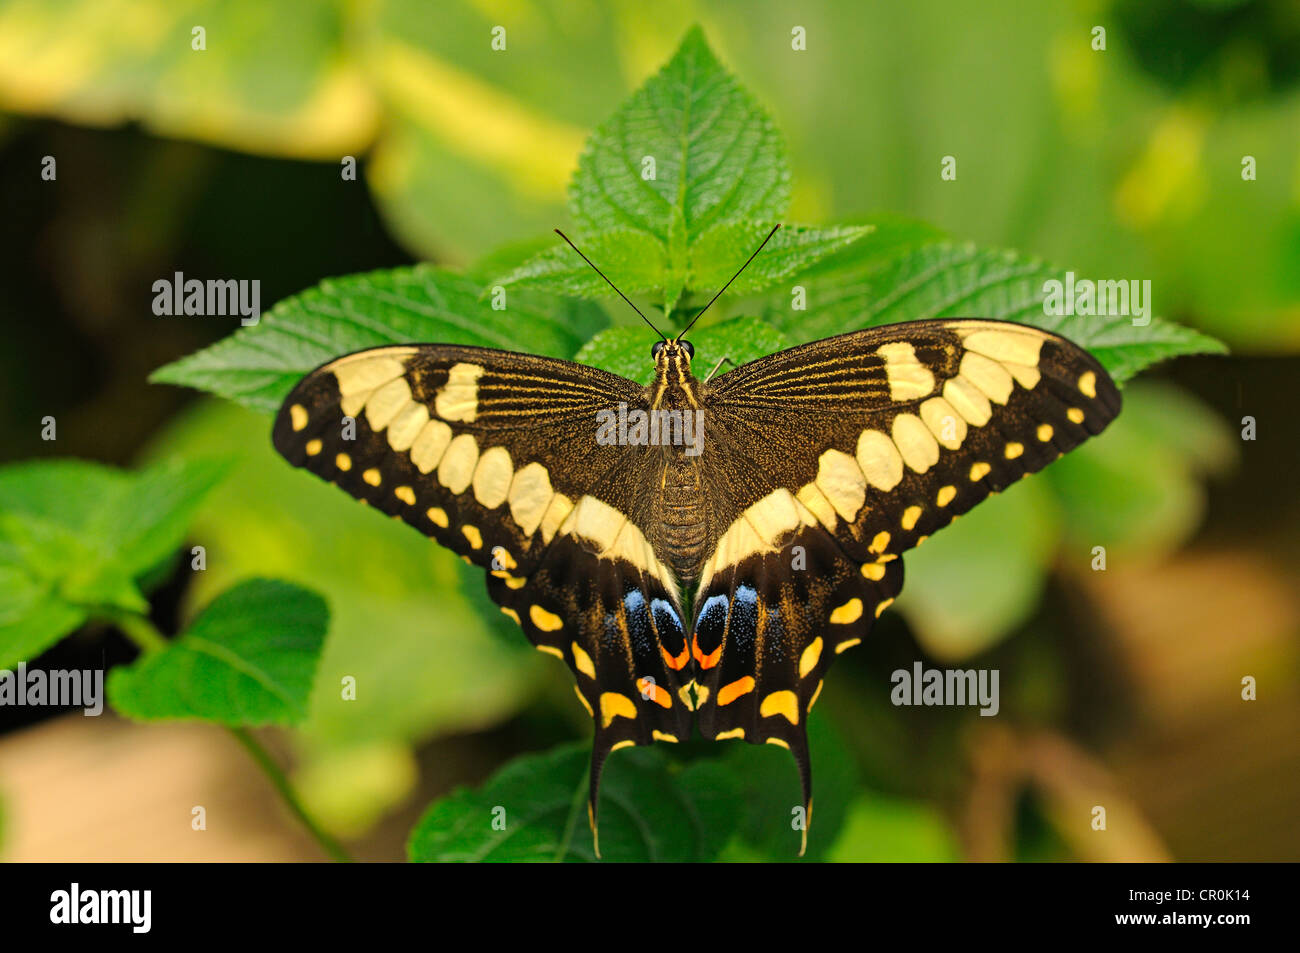 Common Lime Butterfly or Citrus Swallowtail (Papilio demoleus), tropical butterfly, Australia Stock Photo